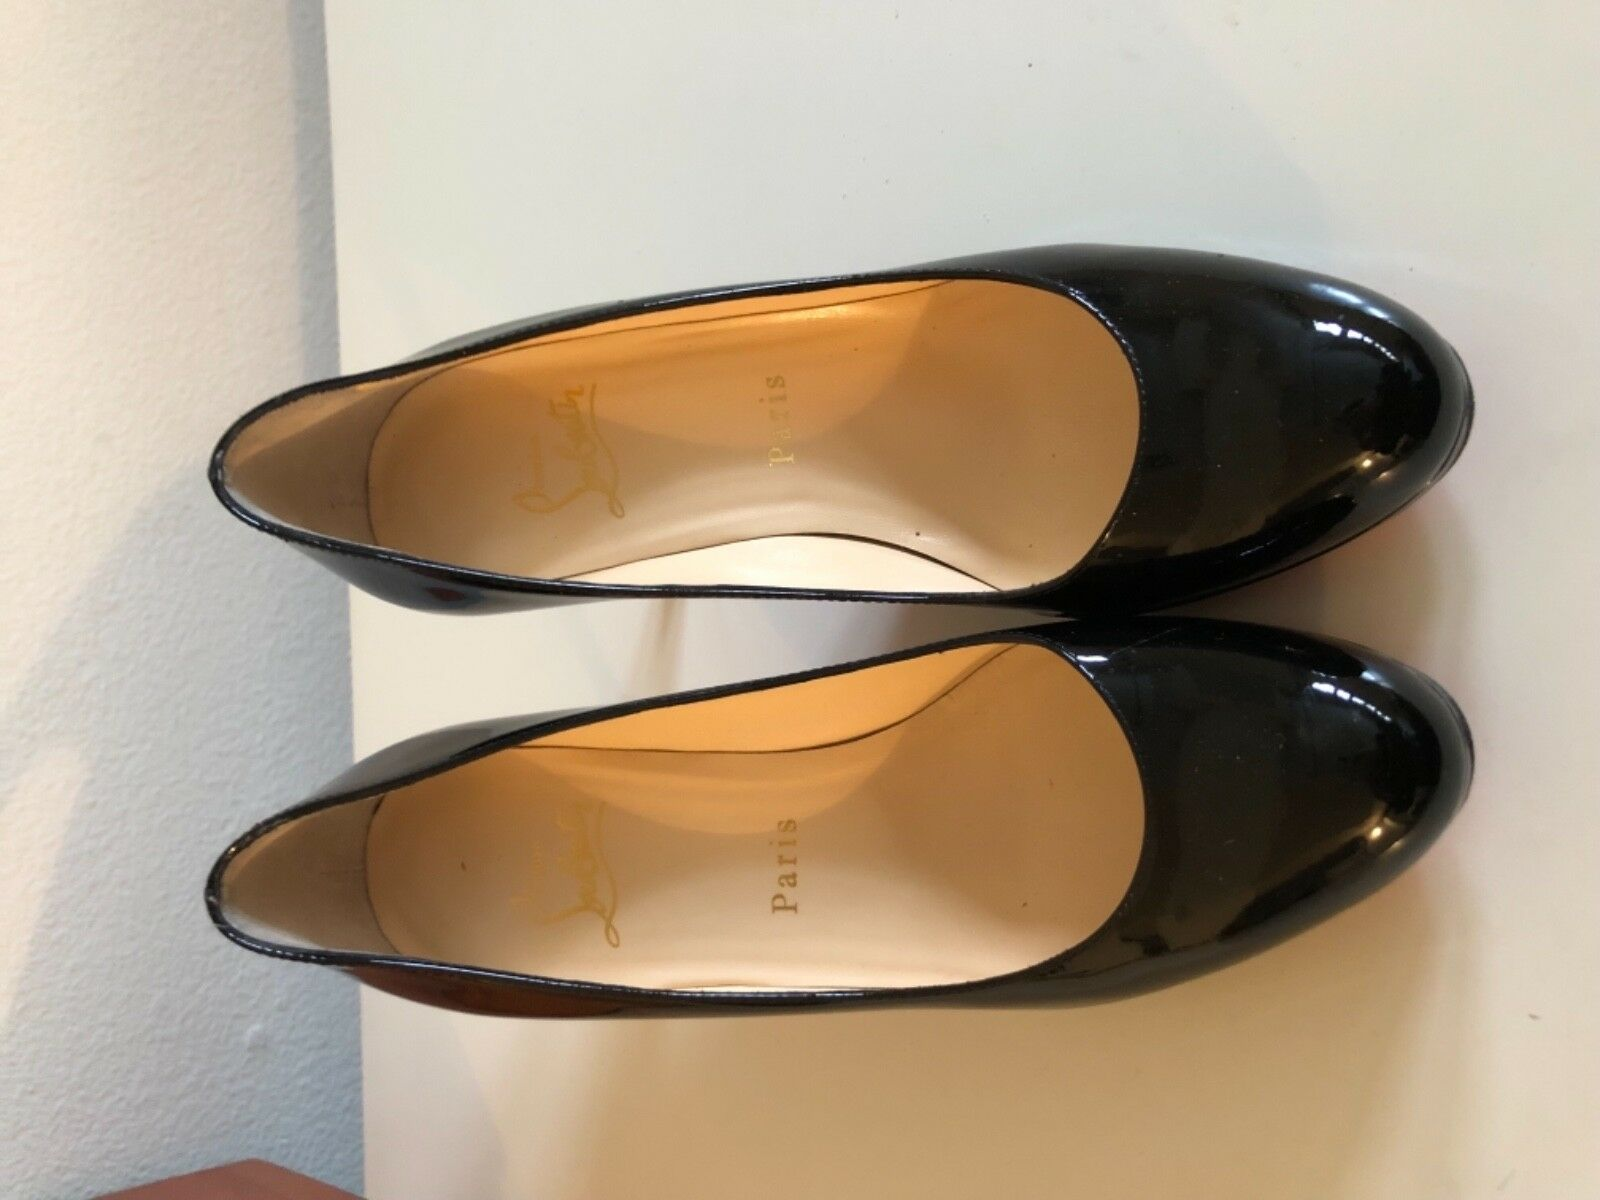 Famous Black and Red Christian Louboutin Heels Size 37